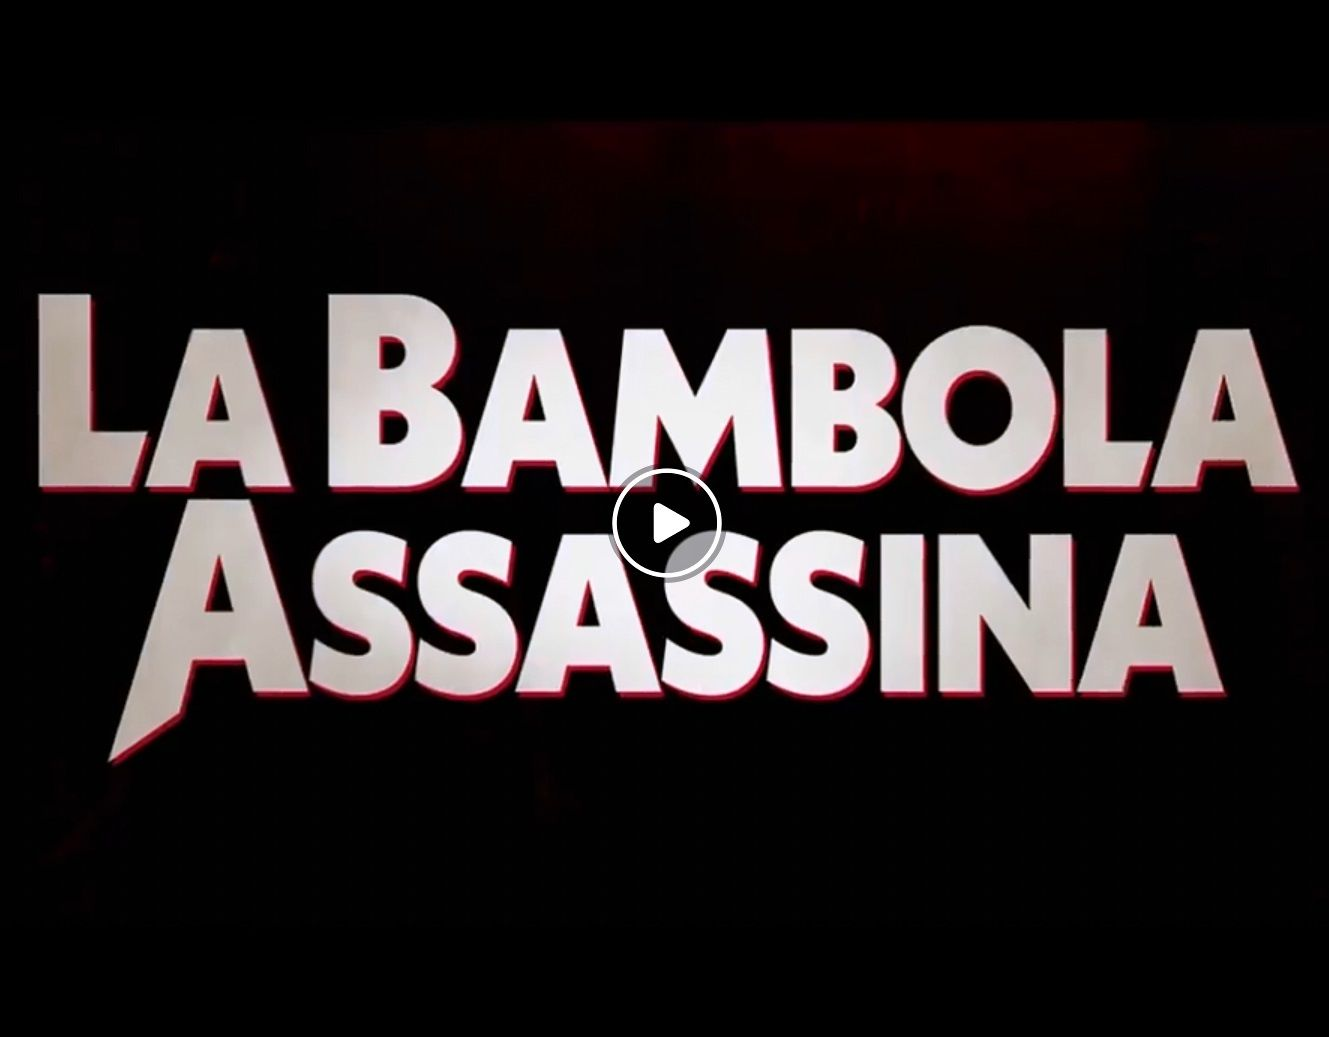 Cb01 La Bambola Assassina 2019 Streaming Ita Horror Film Film Horror Film Completi